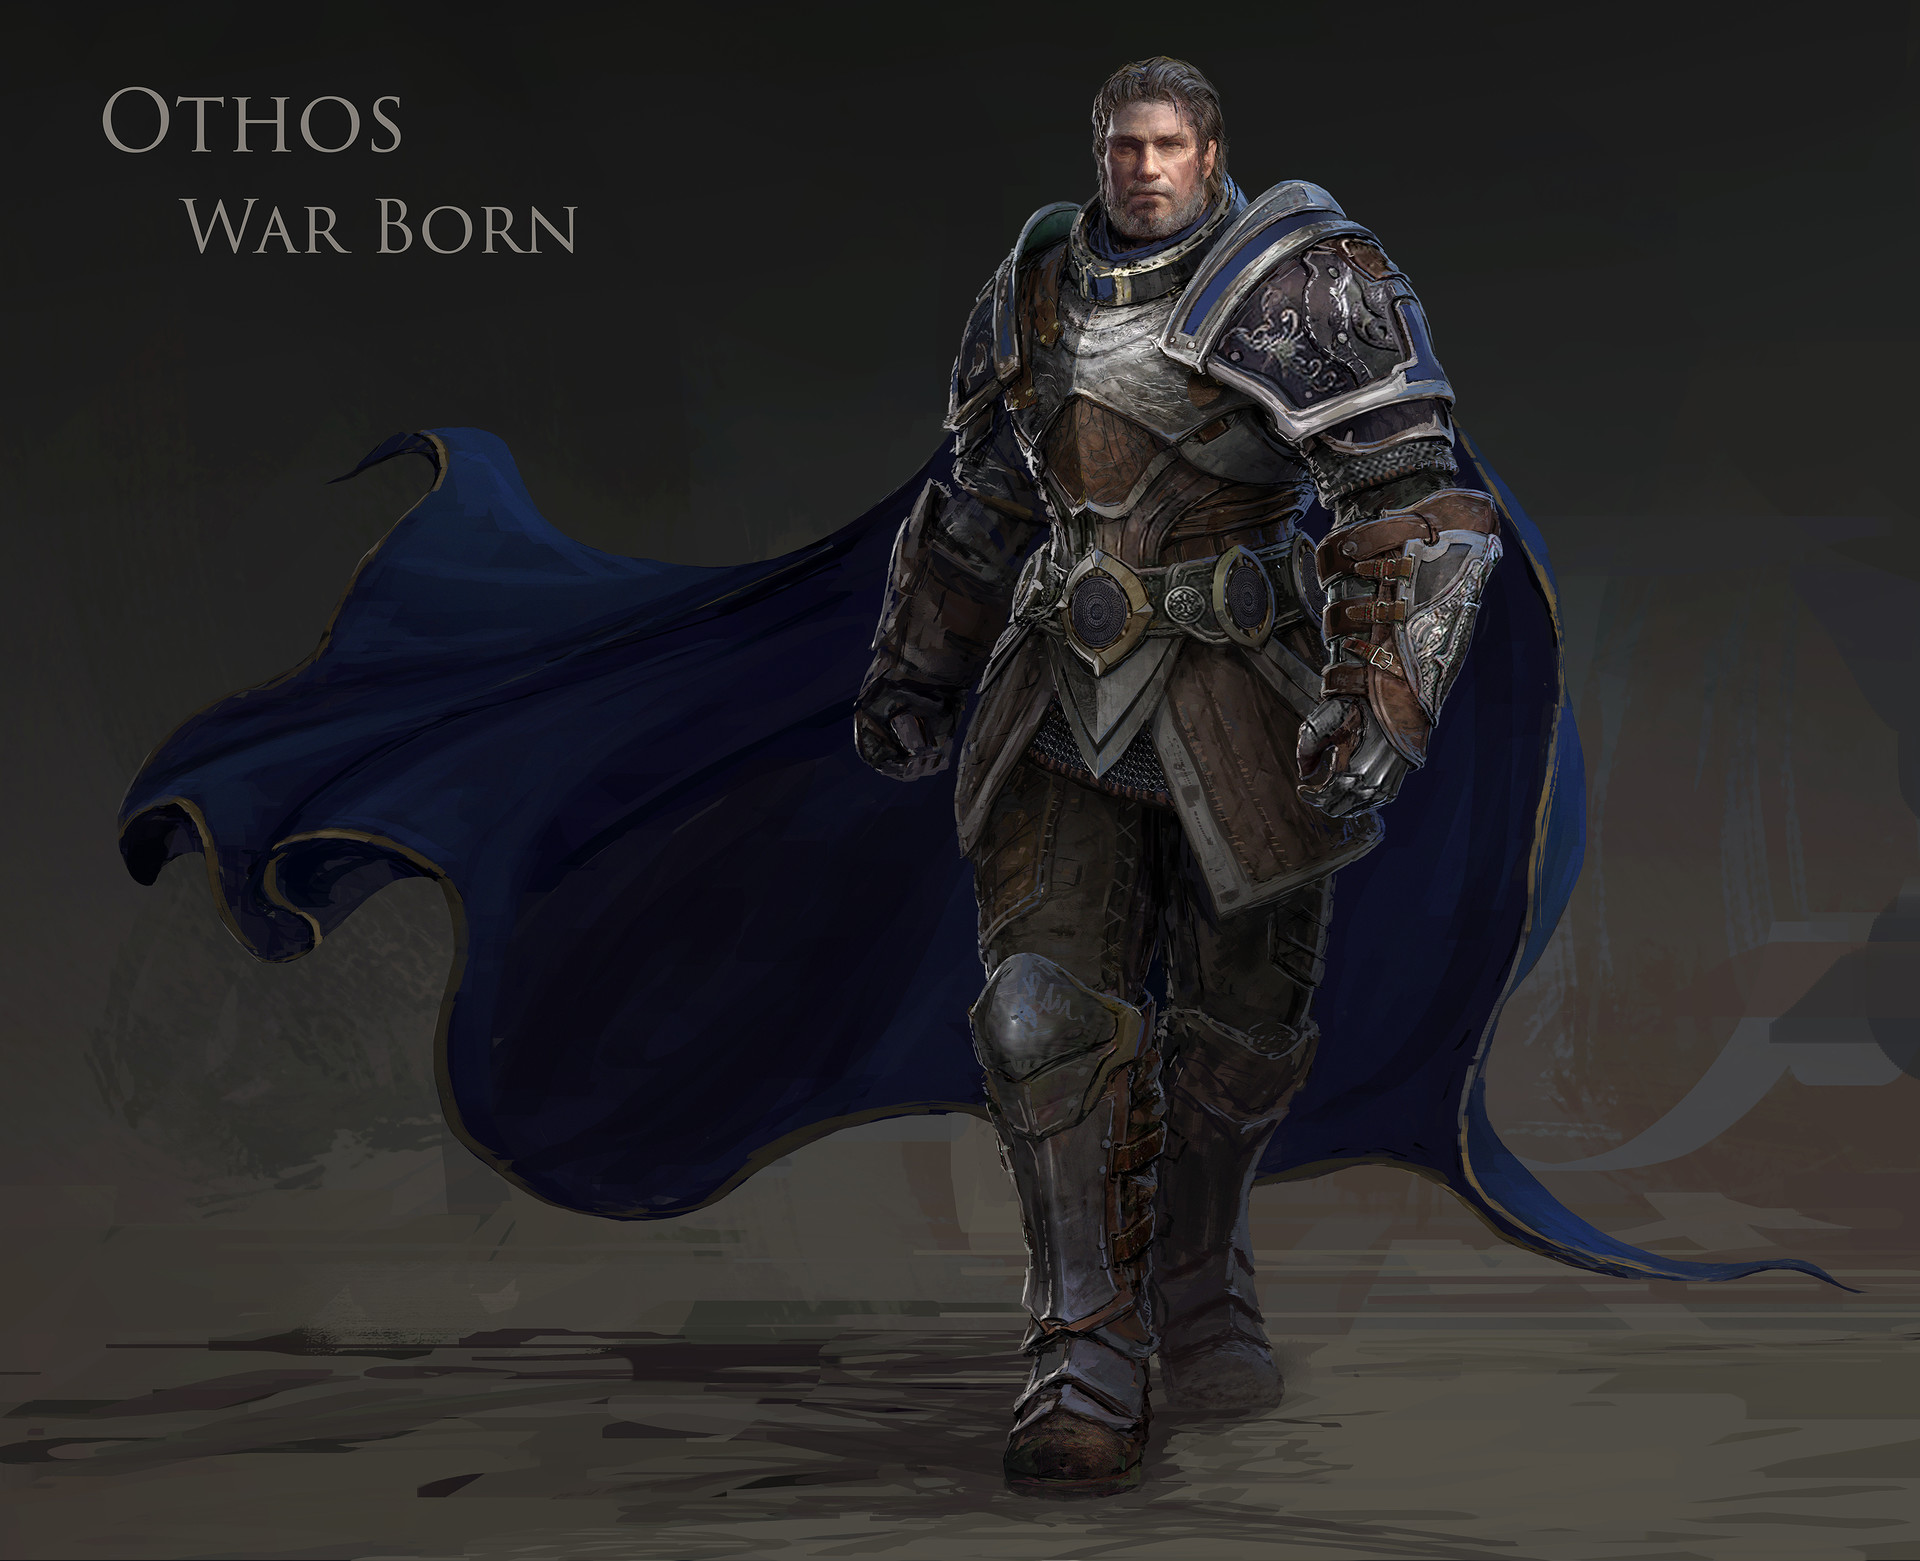 Othos War Born